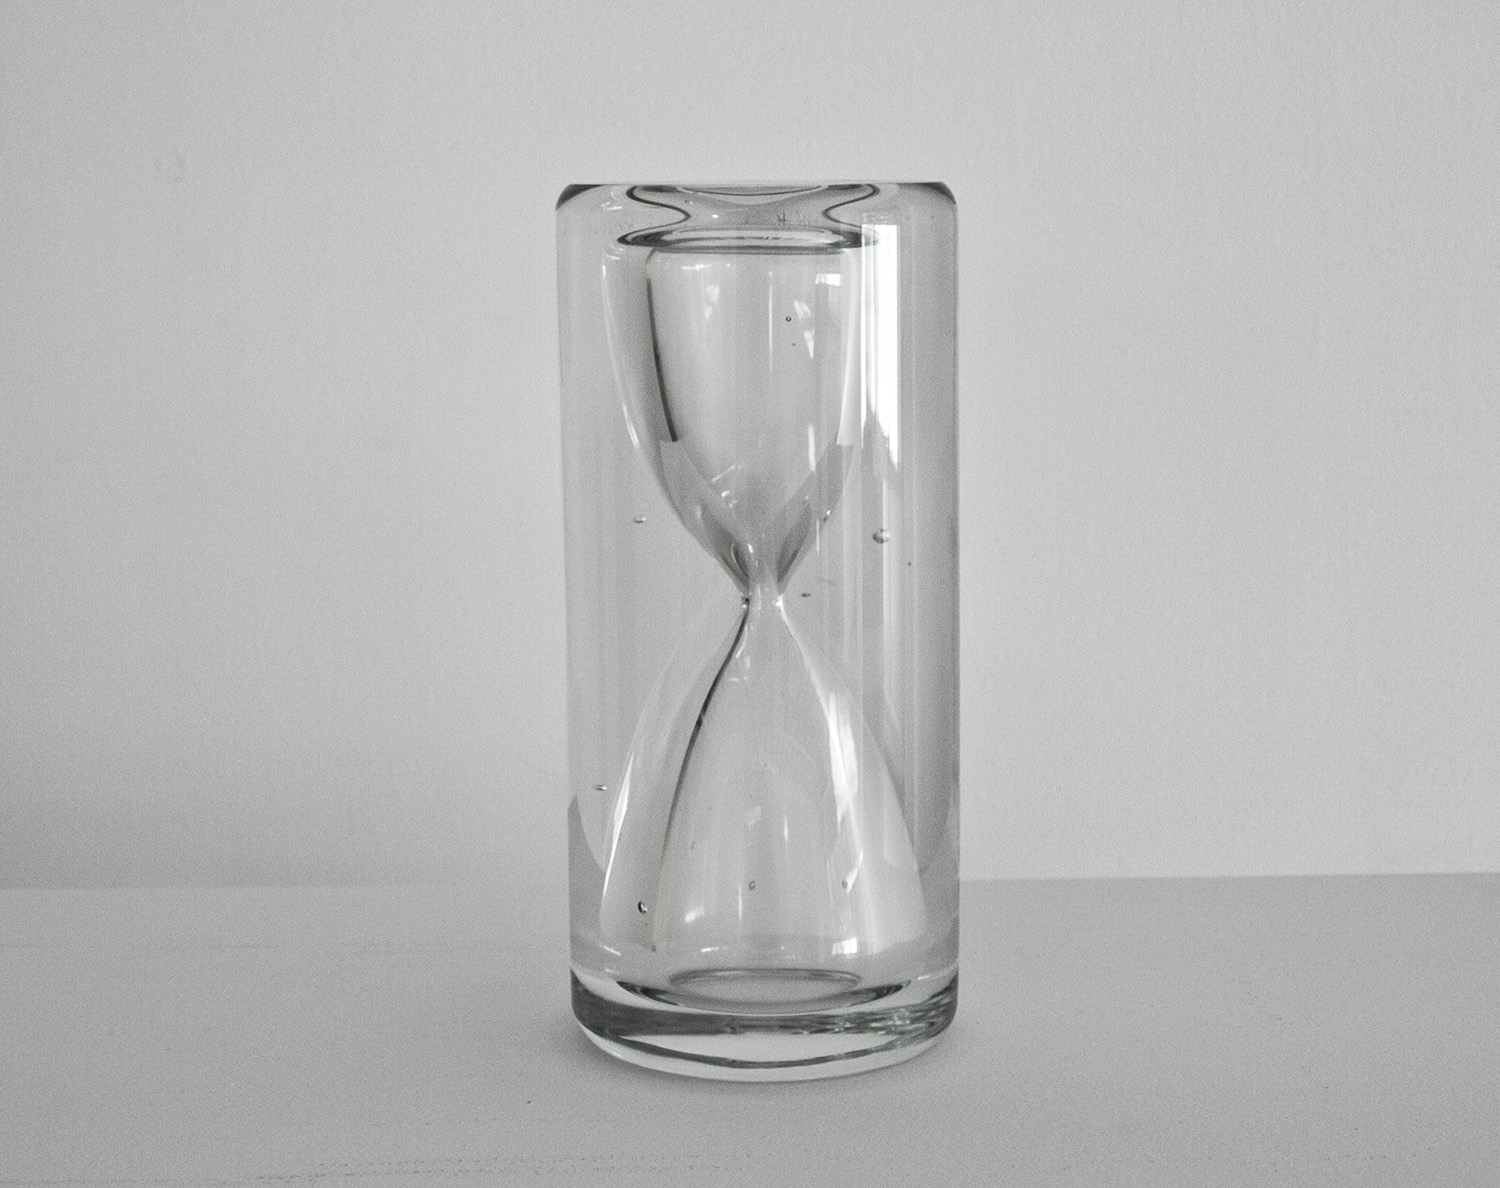 And so on to infinity,  2011, 8x 3.5 in, glass